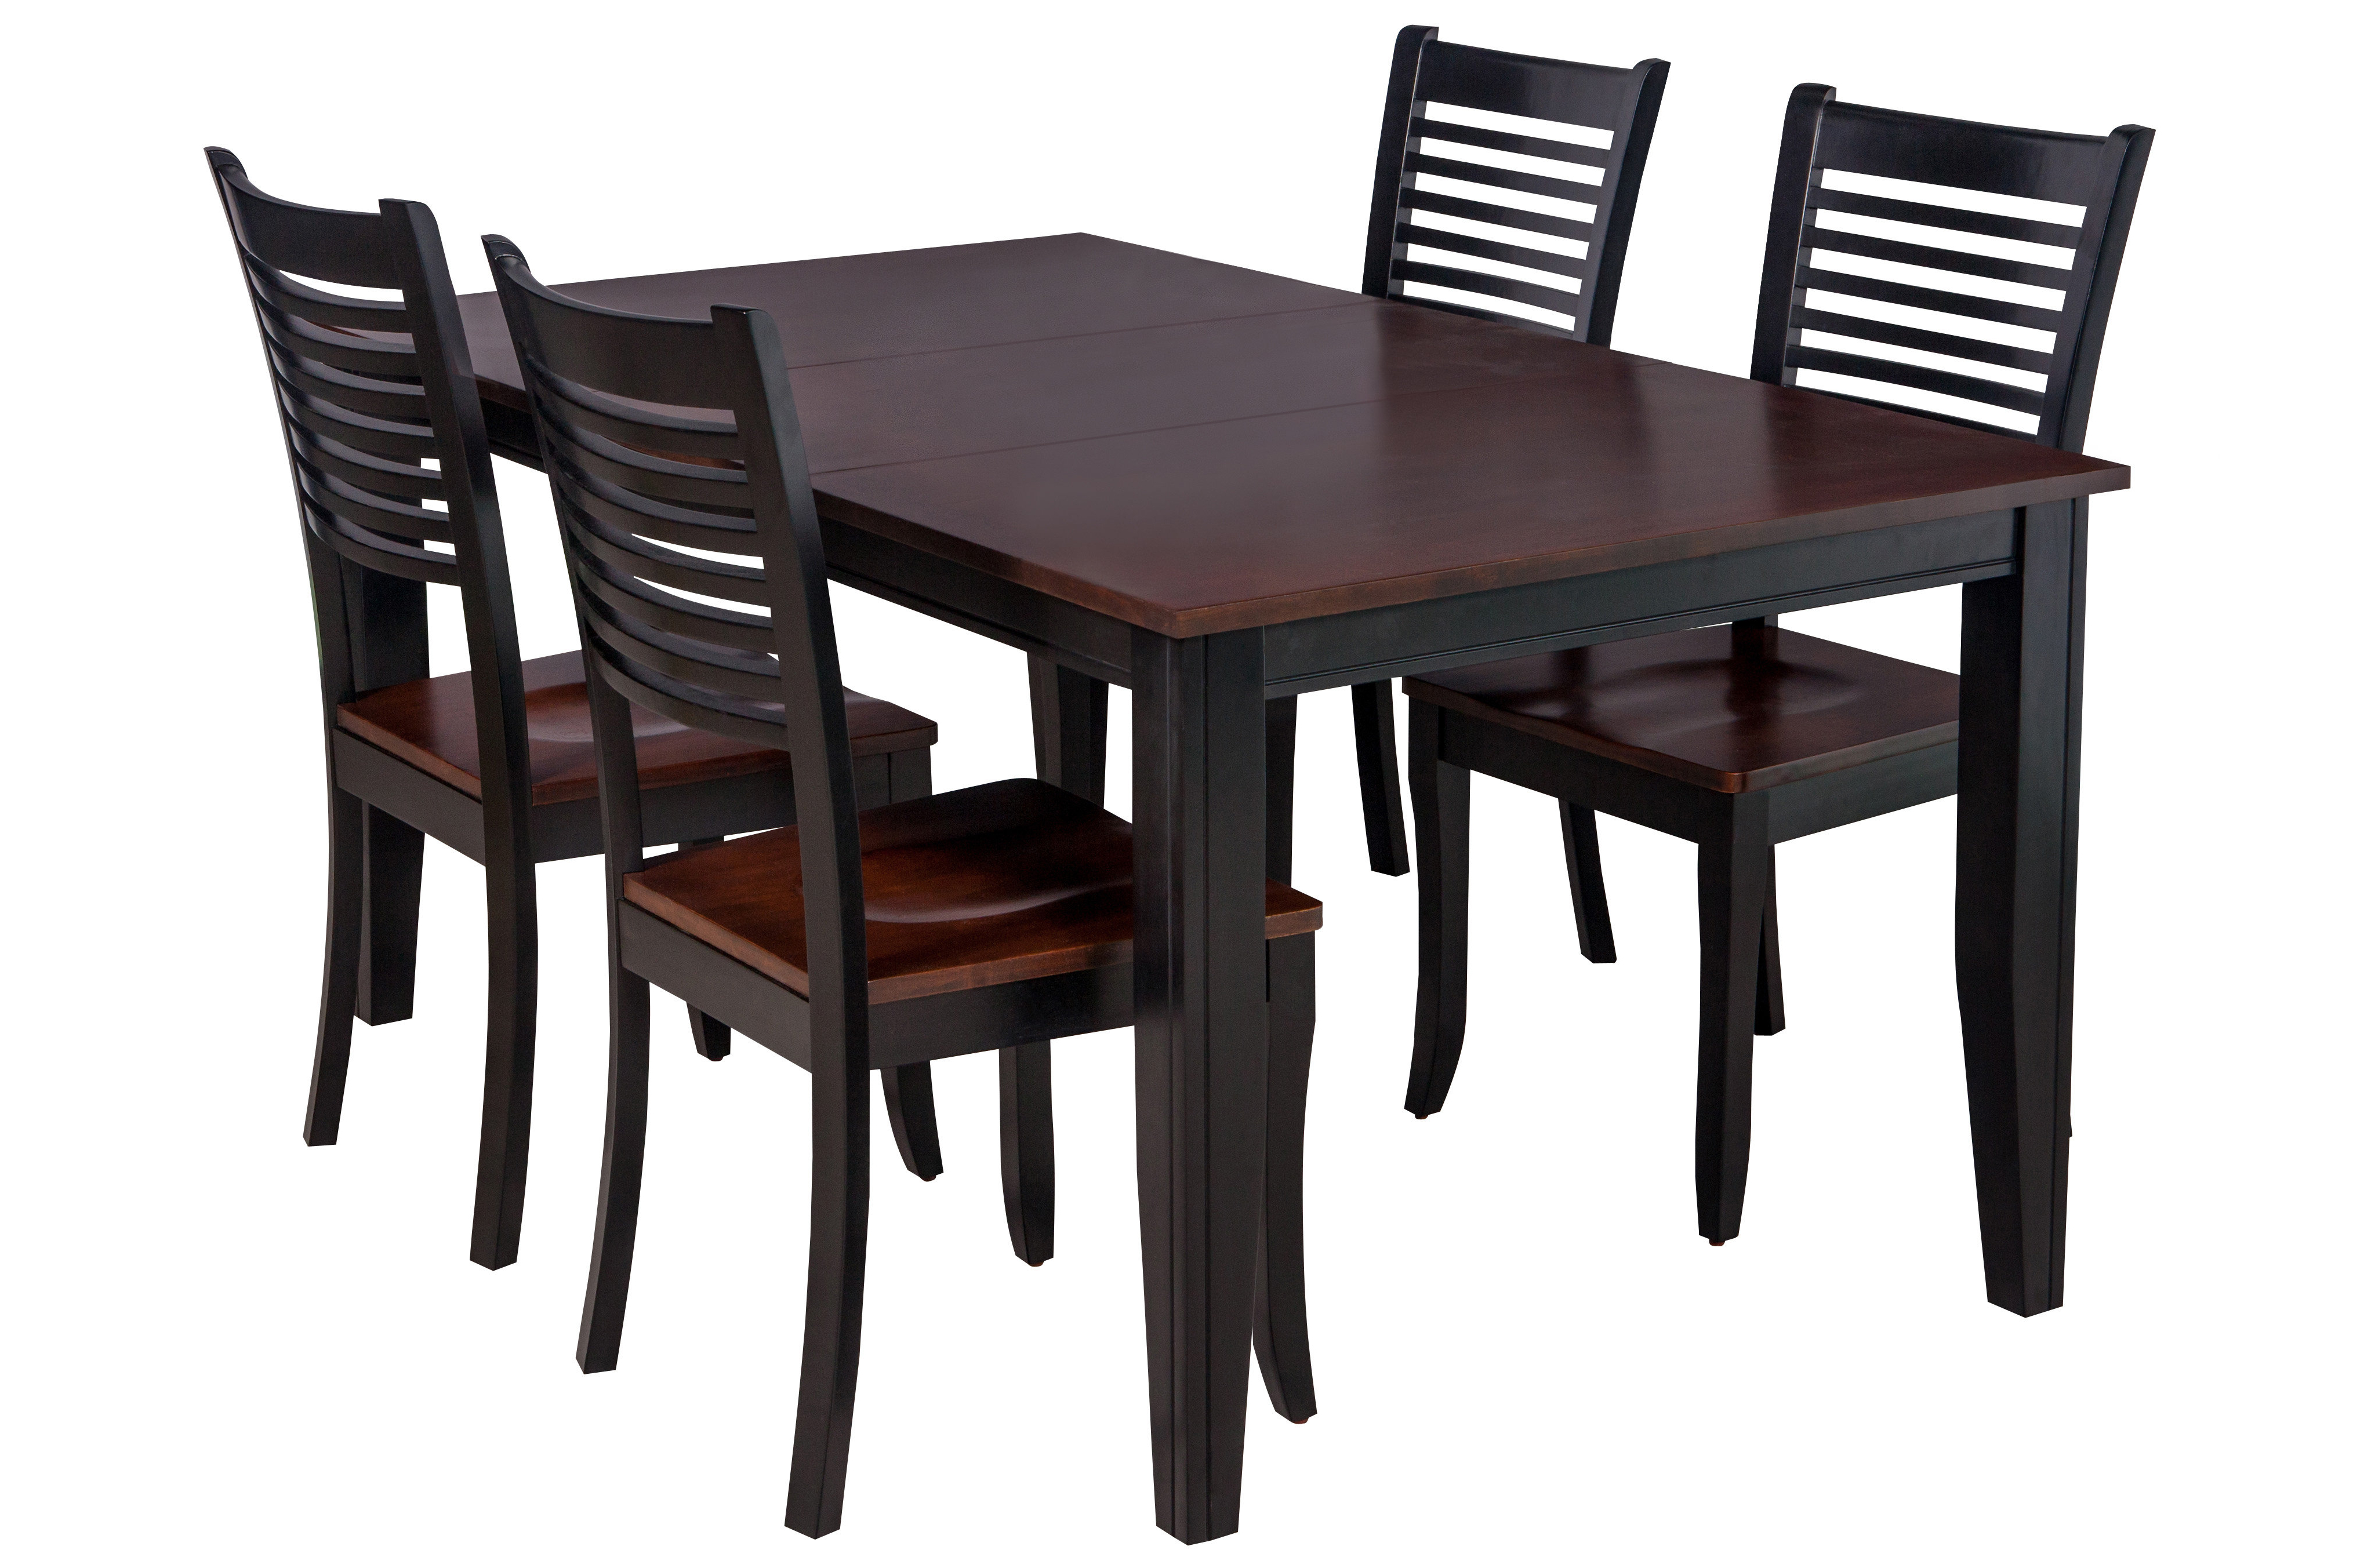 Aden 5 Piece Solid Wood Dining Set With Popular Adan 5 Piece Solid Wood Dining Sets (Set Of 5) (View 12 of 20)